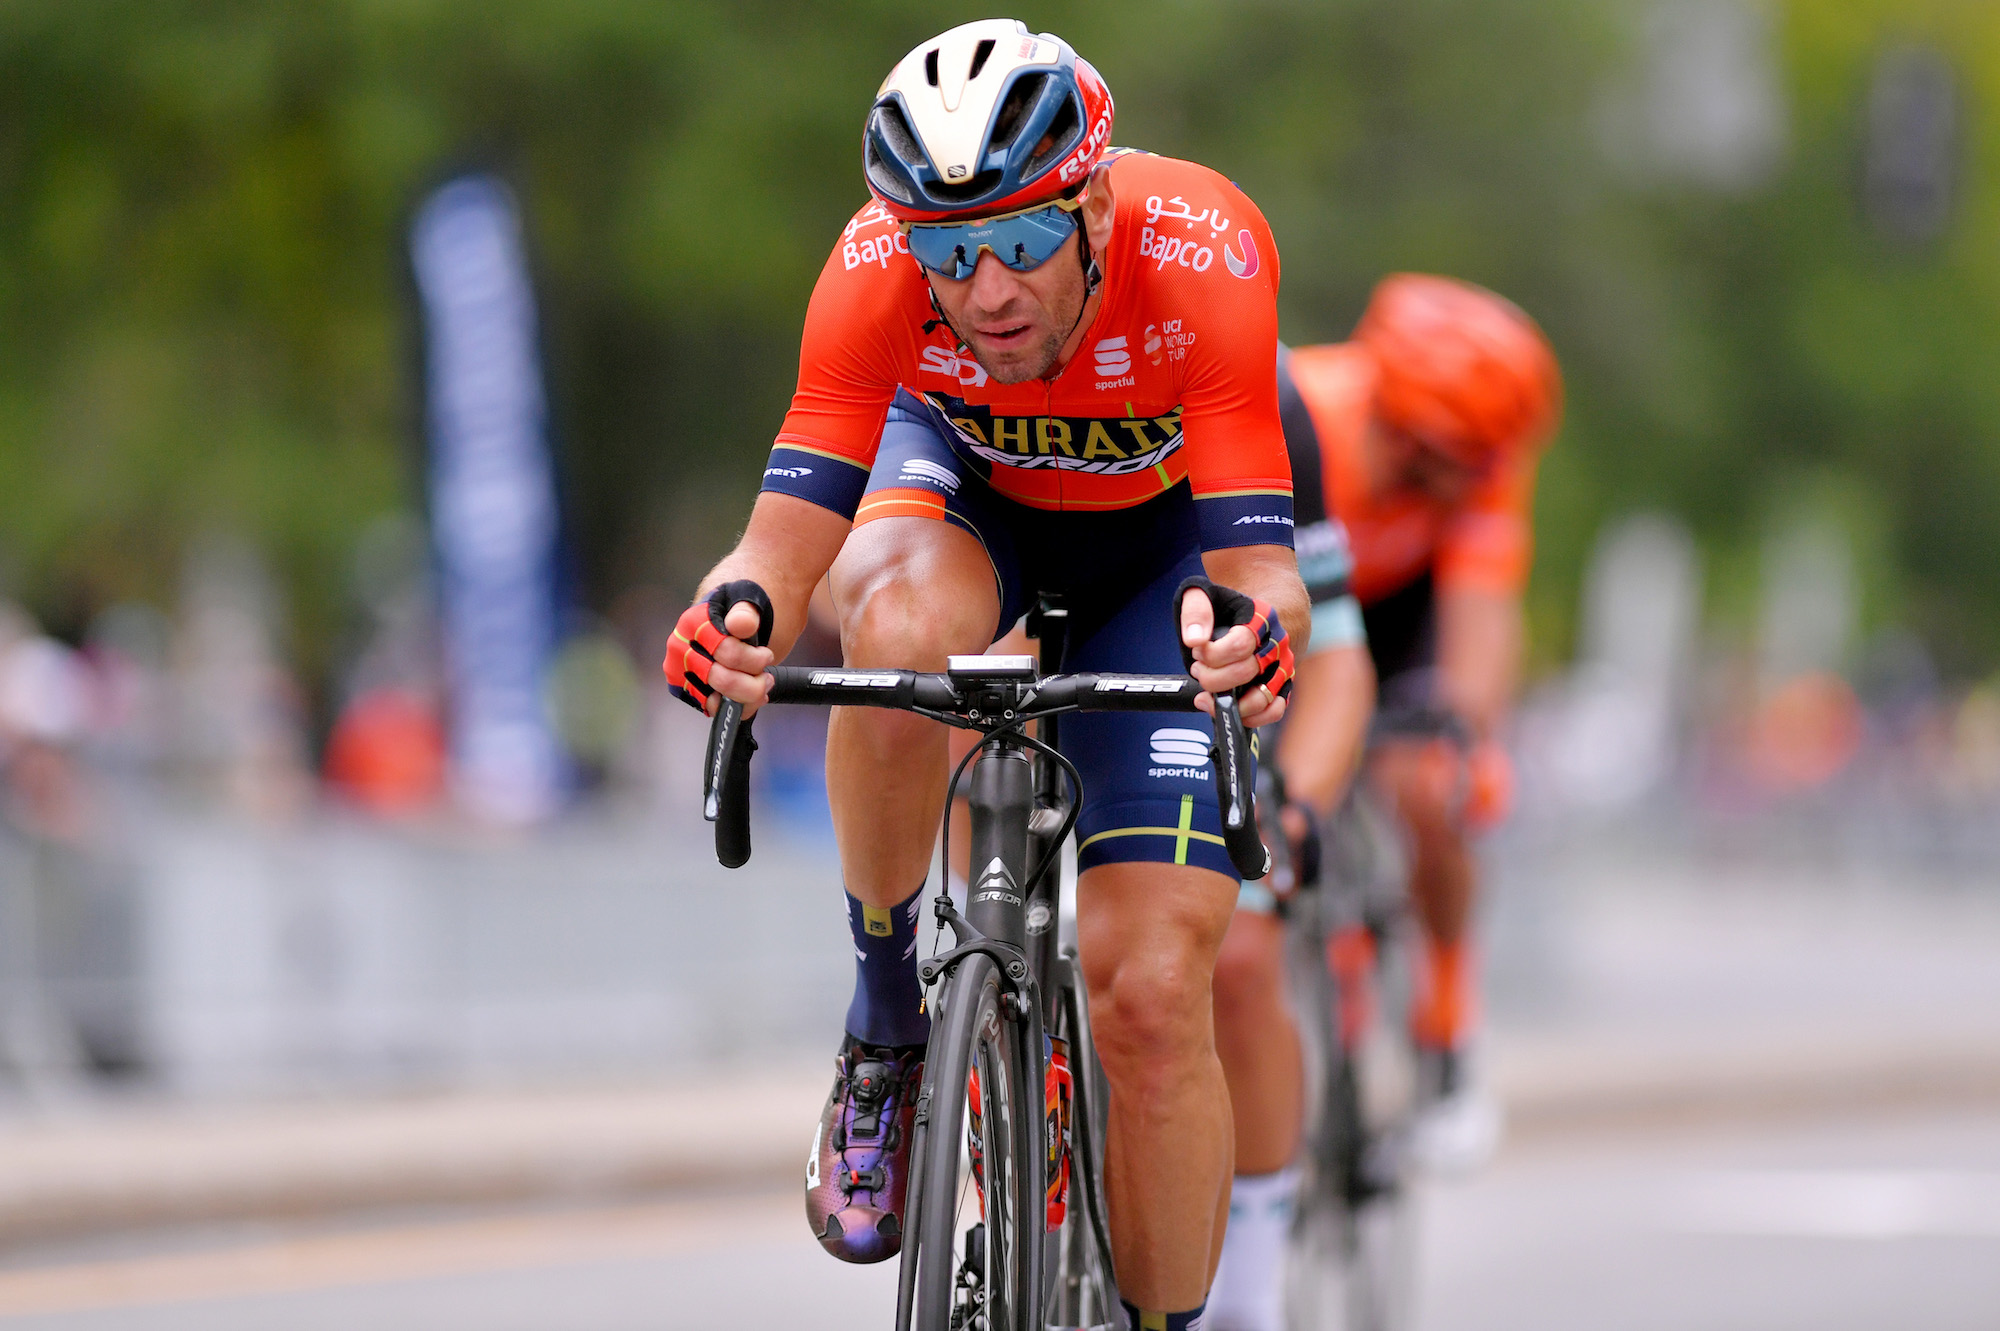 Vincenzo Nibali to skip 2020 Tour de France to focus on Olympics and Giro d'Italia, according to reports